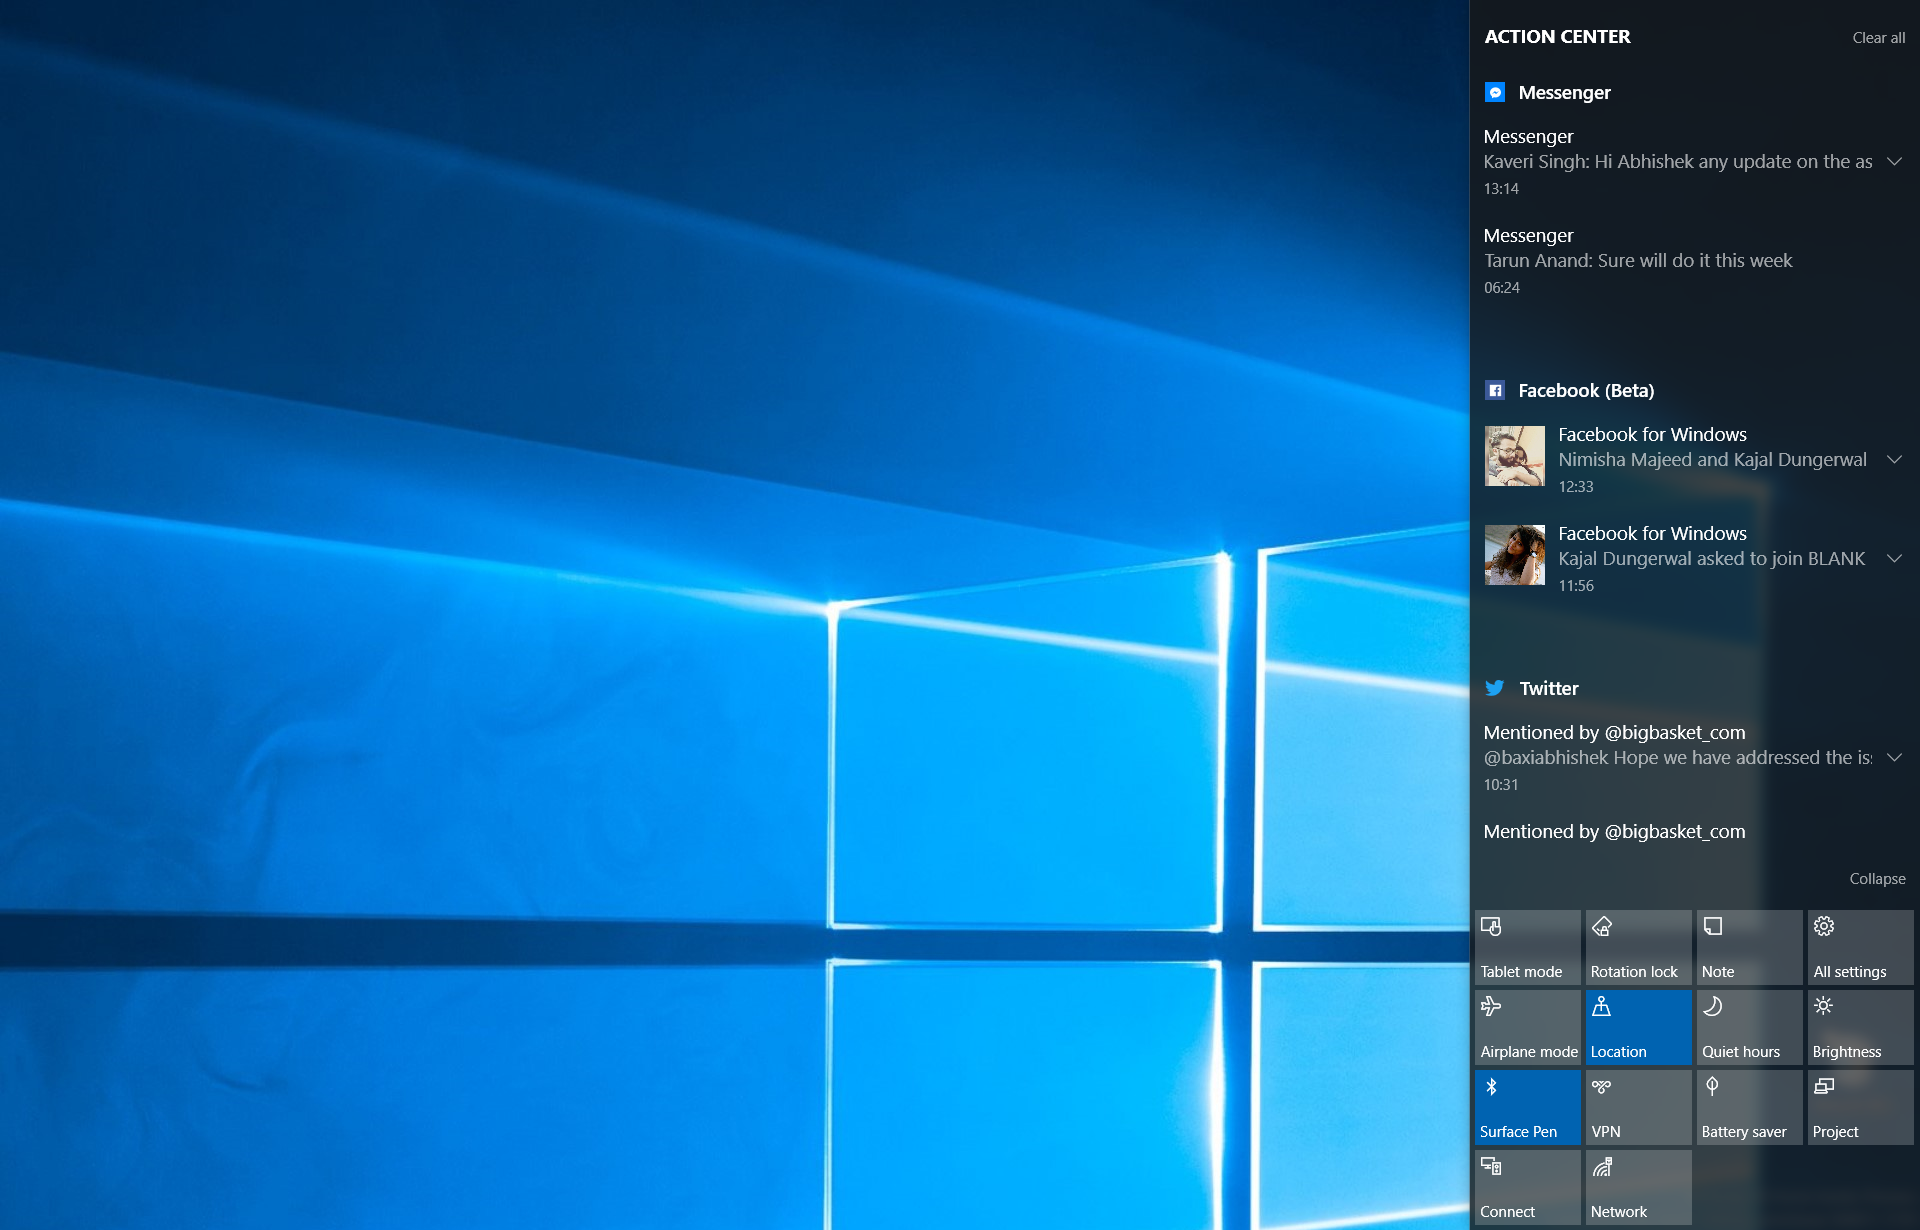 windows-10-anniversary-update-action-center